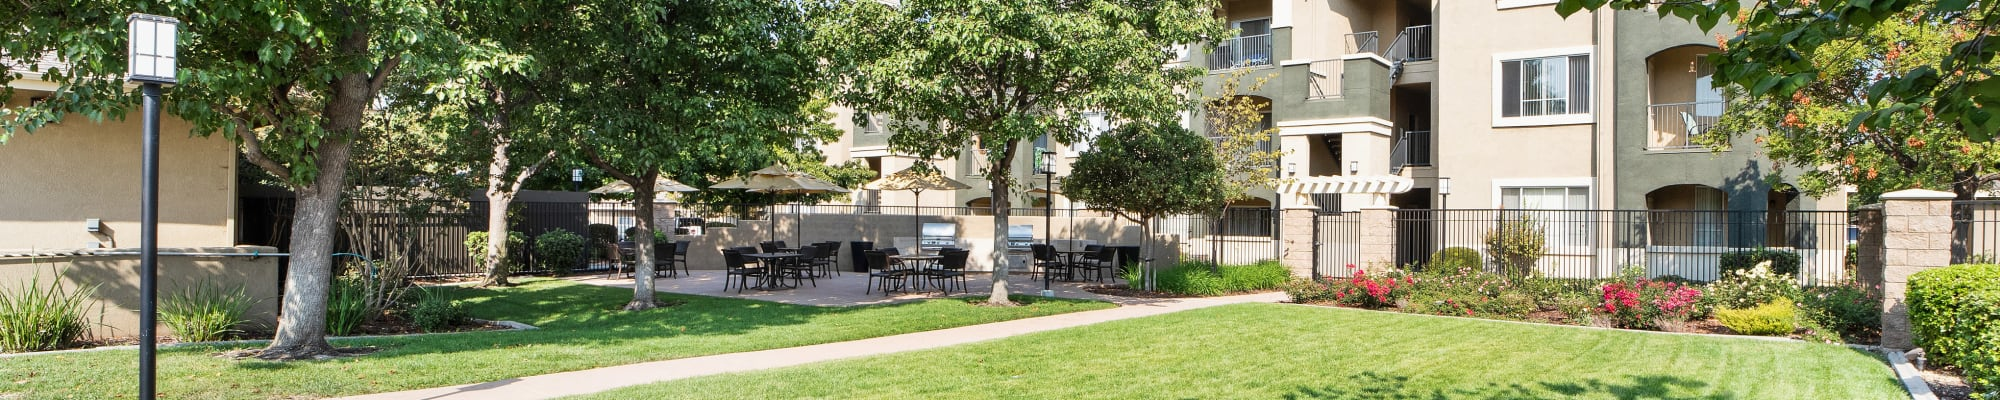 Resident perks at Cross Pointe Apartment Homes in Antioch, California